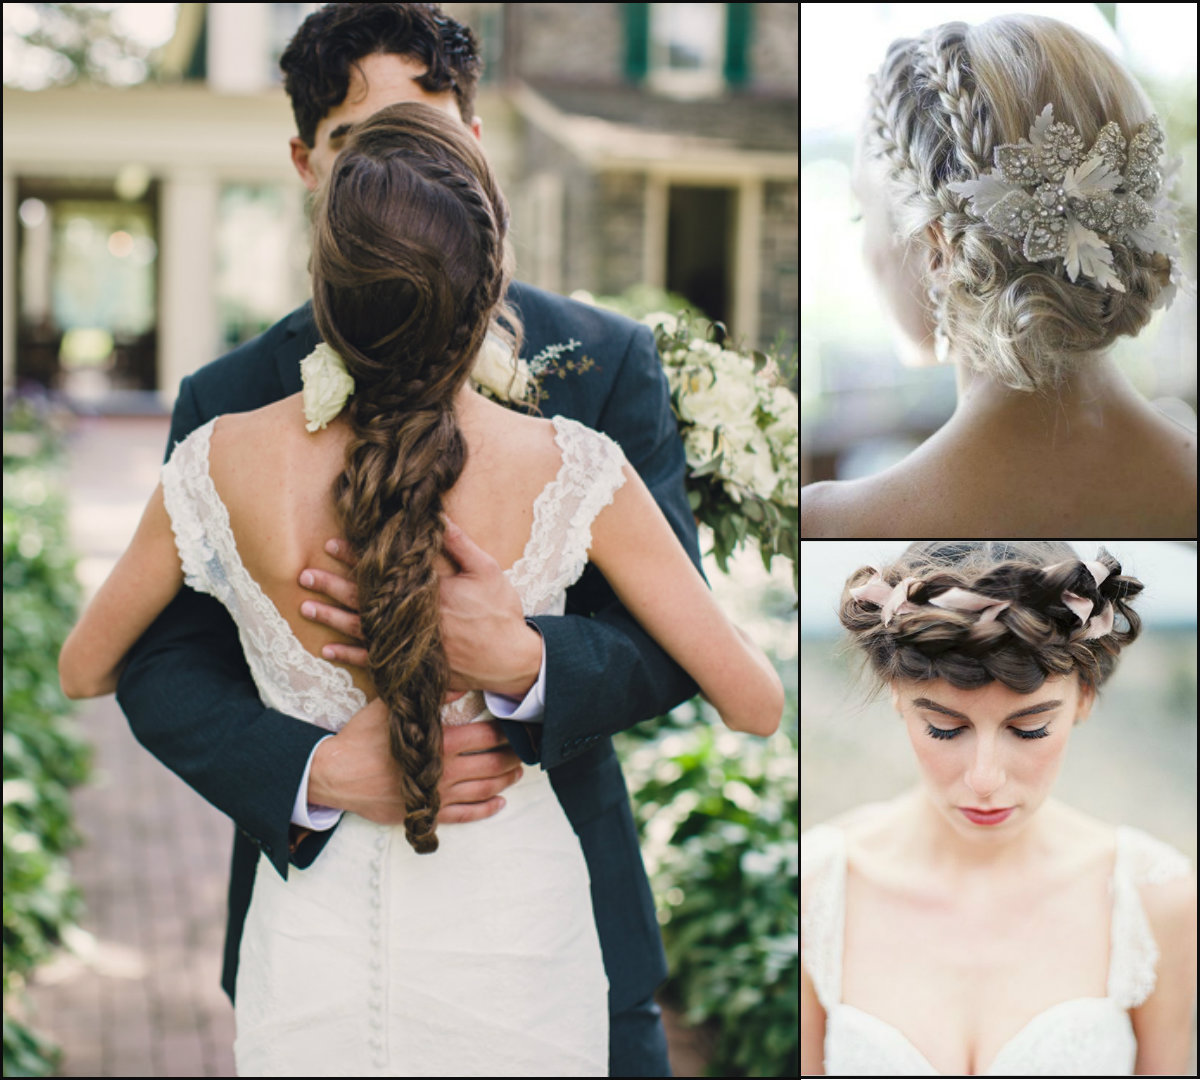 Wedding Hairstyle With Braids: Lovely Wedding Braids Hairstyles 2017